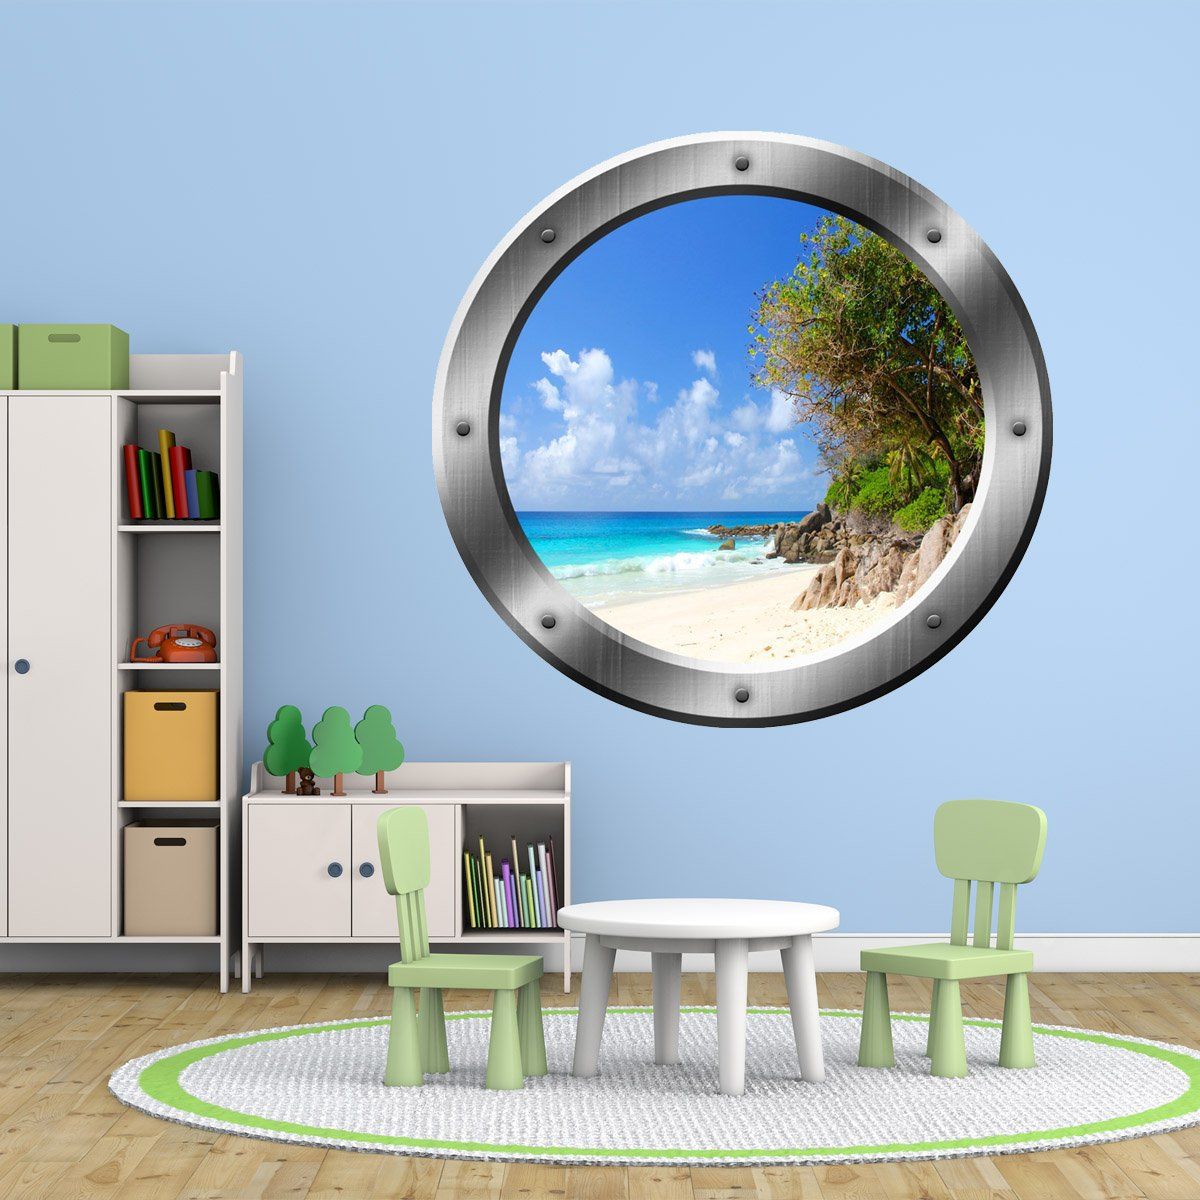 VWAQ Relaxing Peel and Stick Beach Porthole Window Vinyl Wall Decal - SP35 - VWAQ Vinyl Wall Art Quotes and Prints